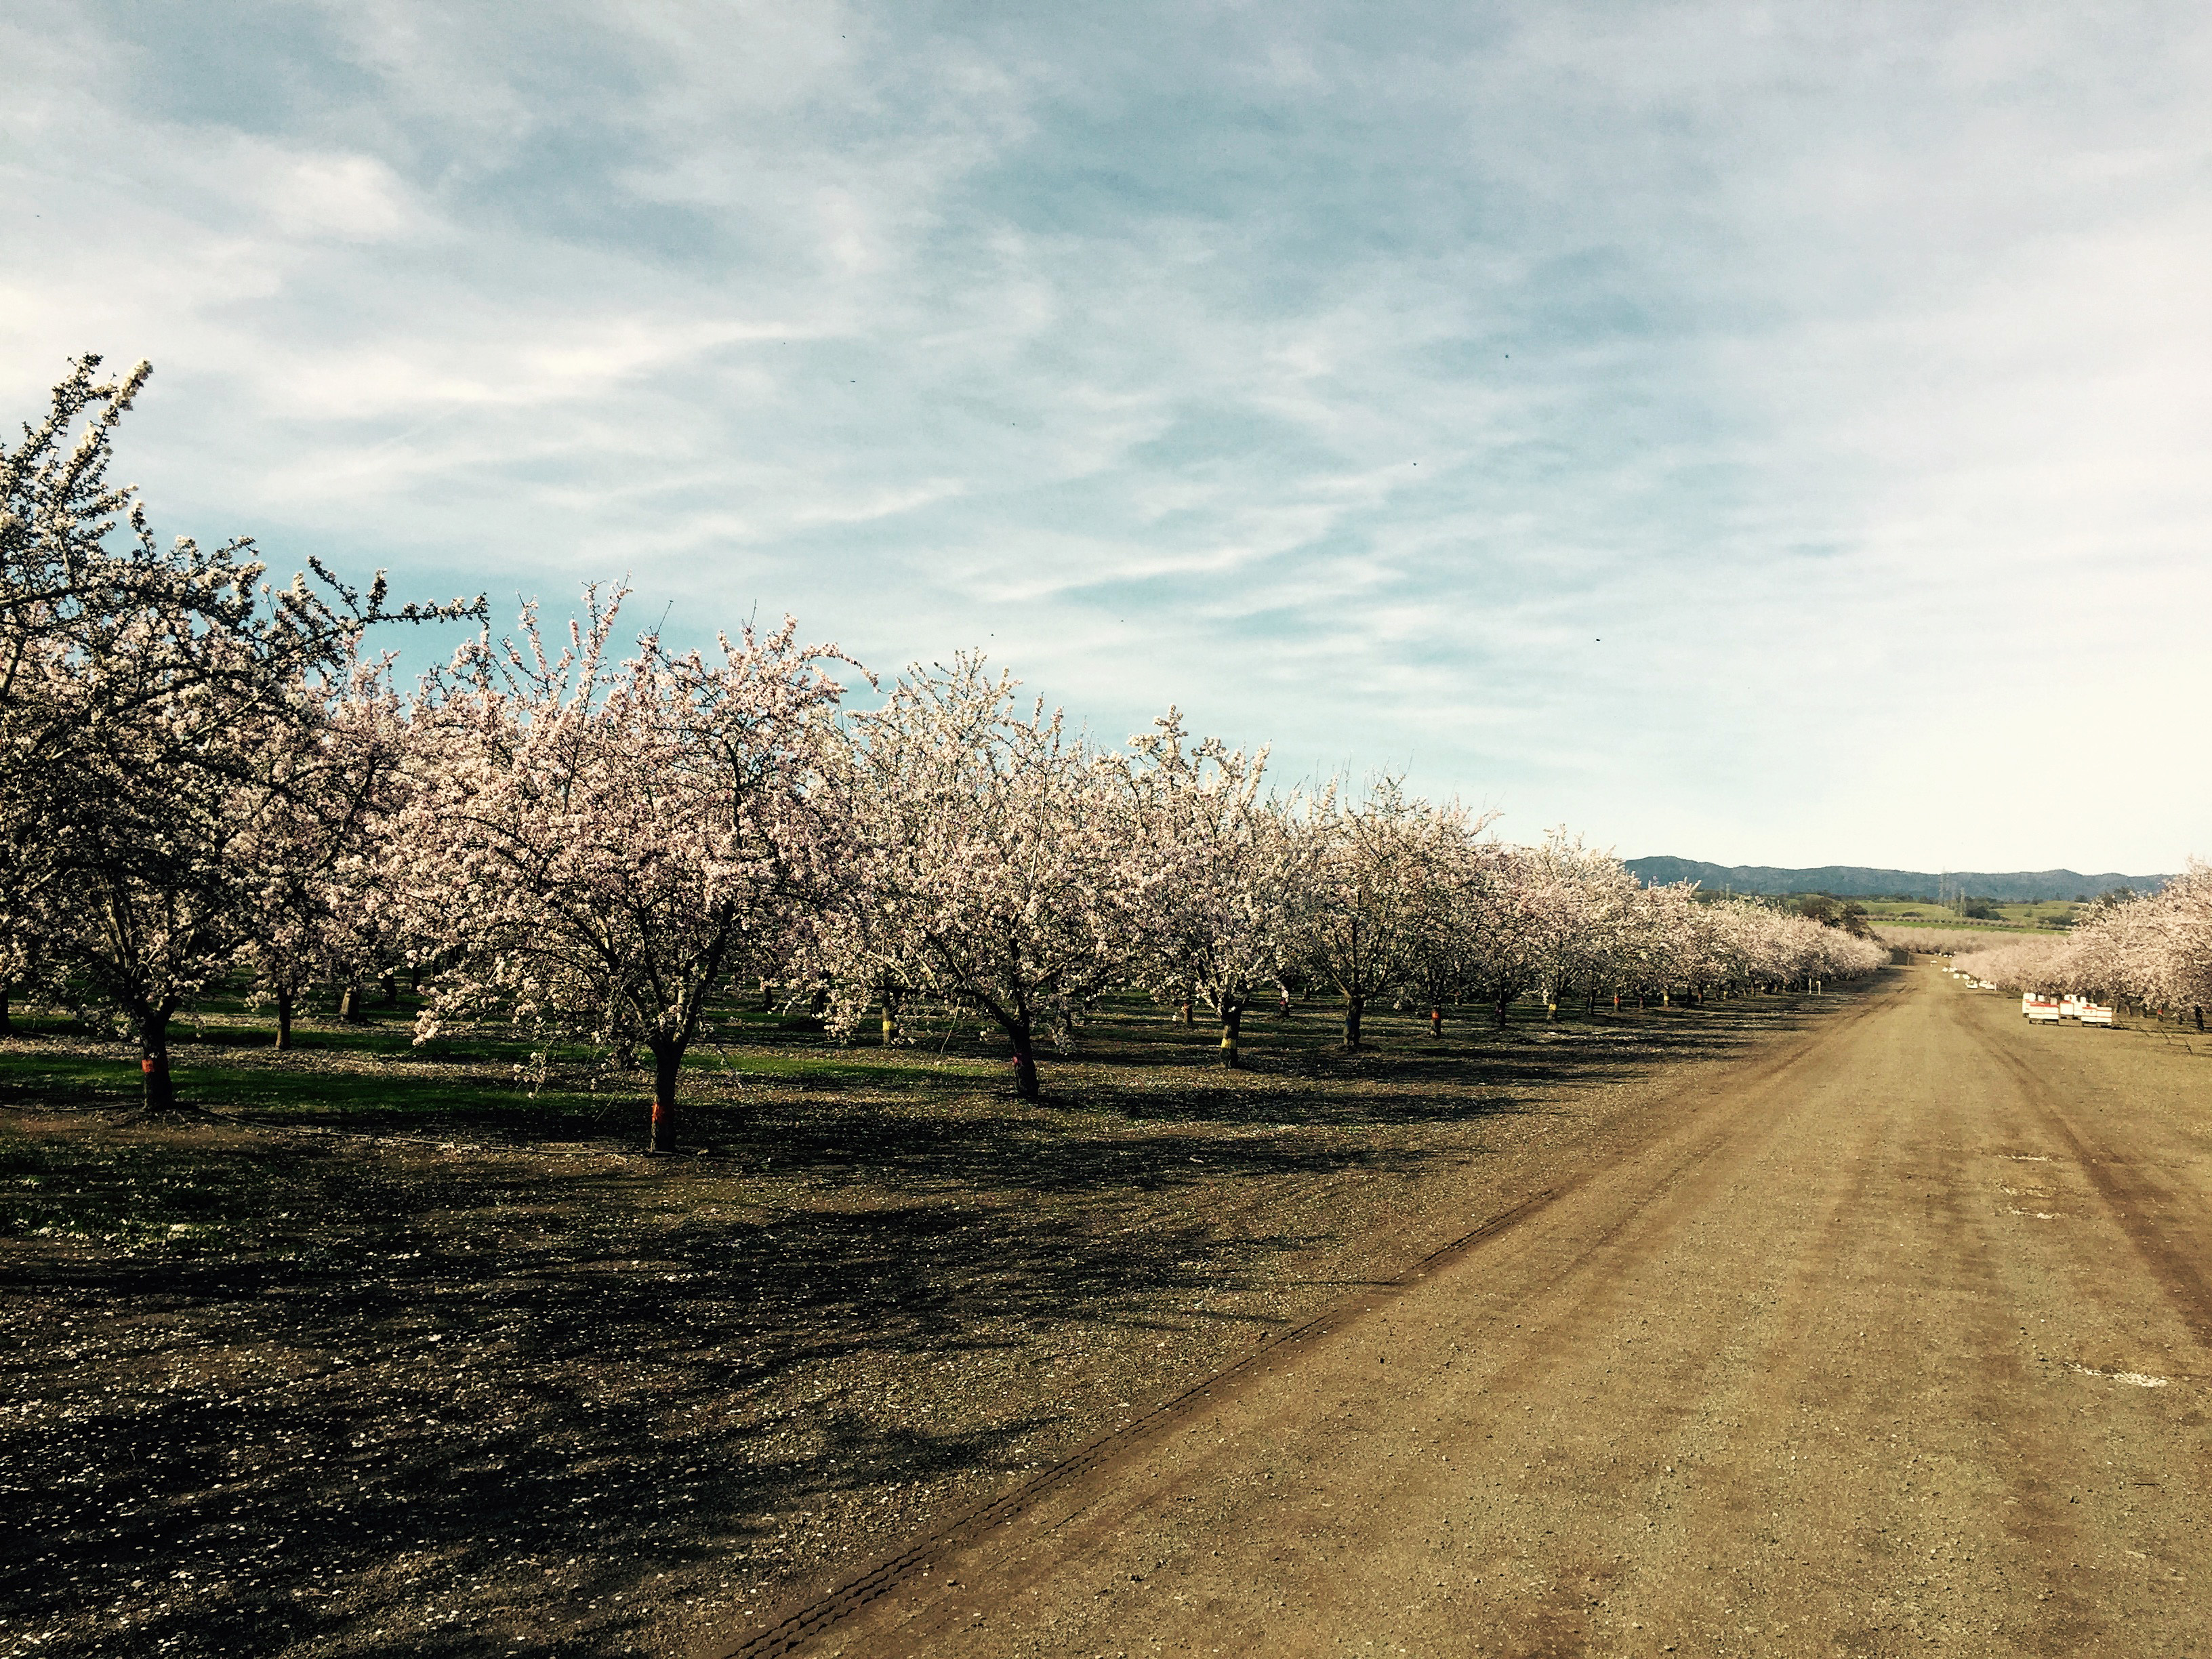 42 burners almond trip orchard hives trees